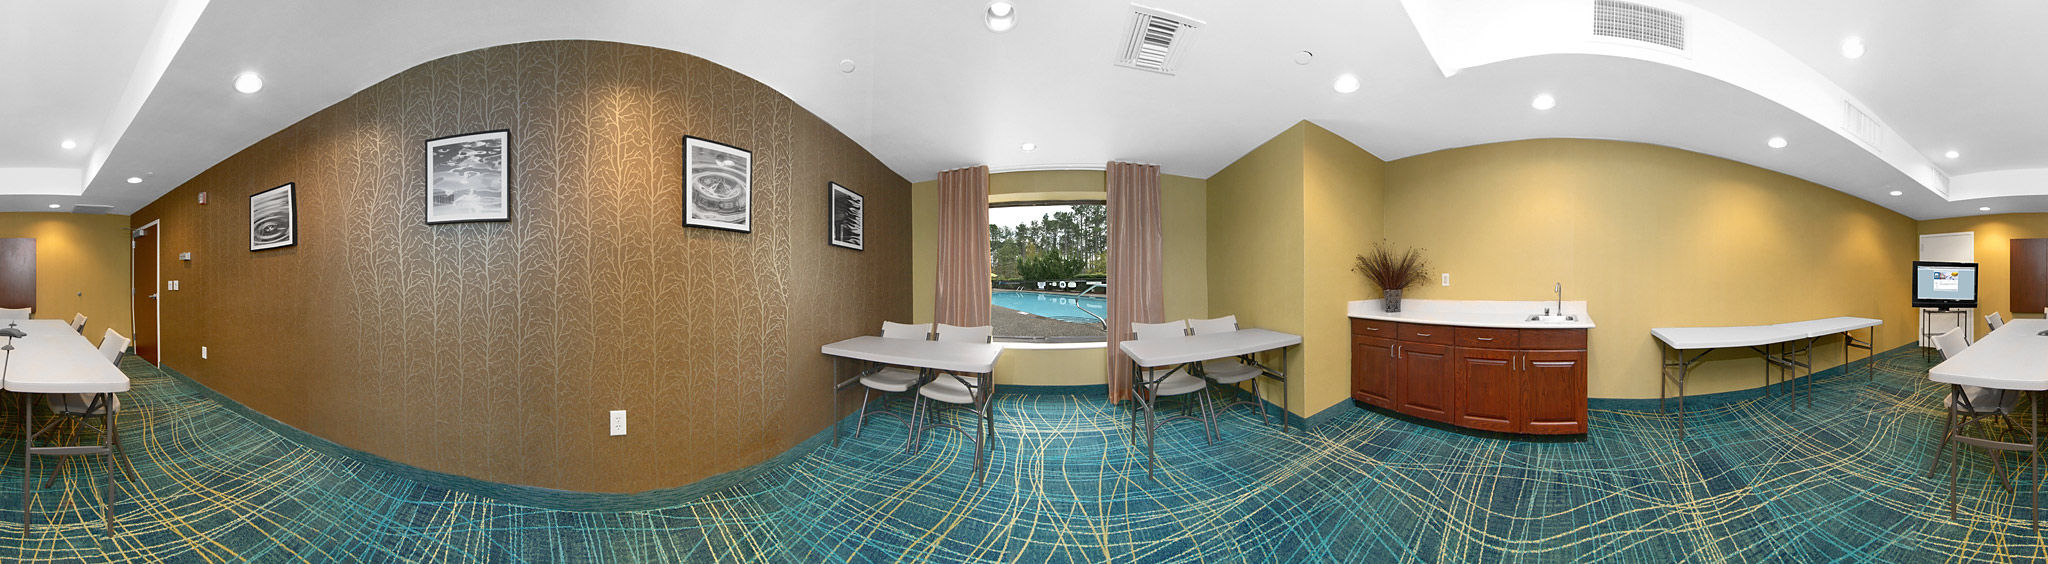 SpringHill Suites by Marriott Pinehurst Southern Pines image 7